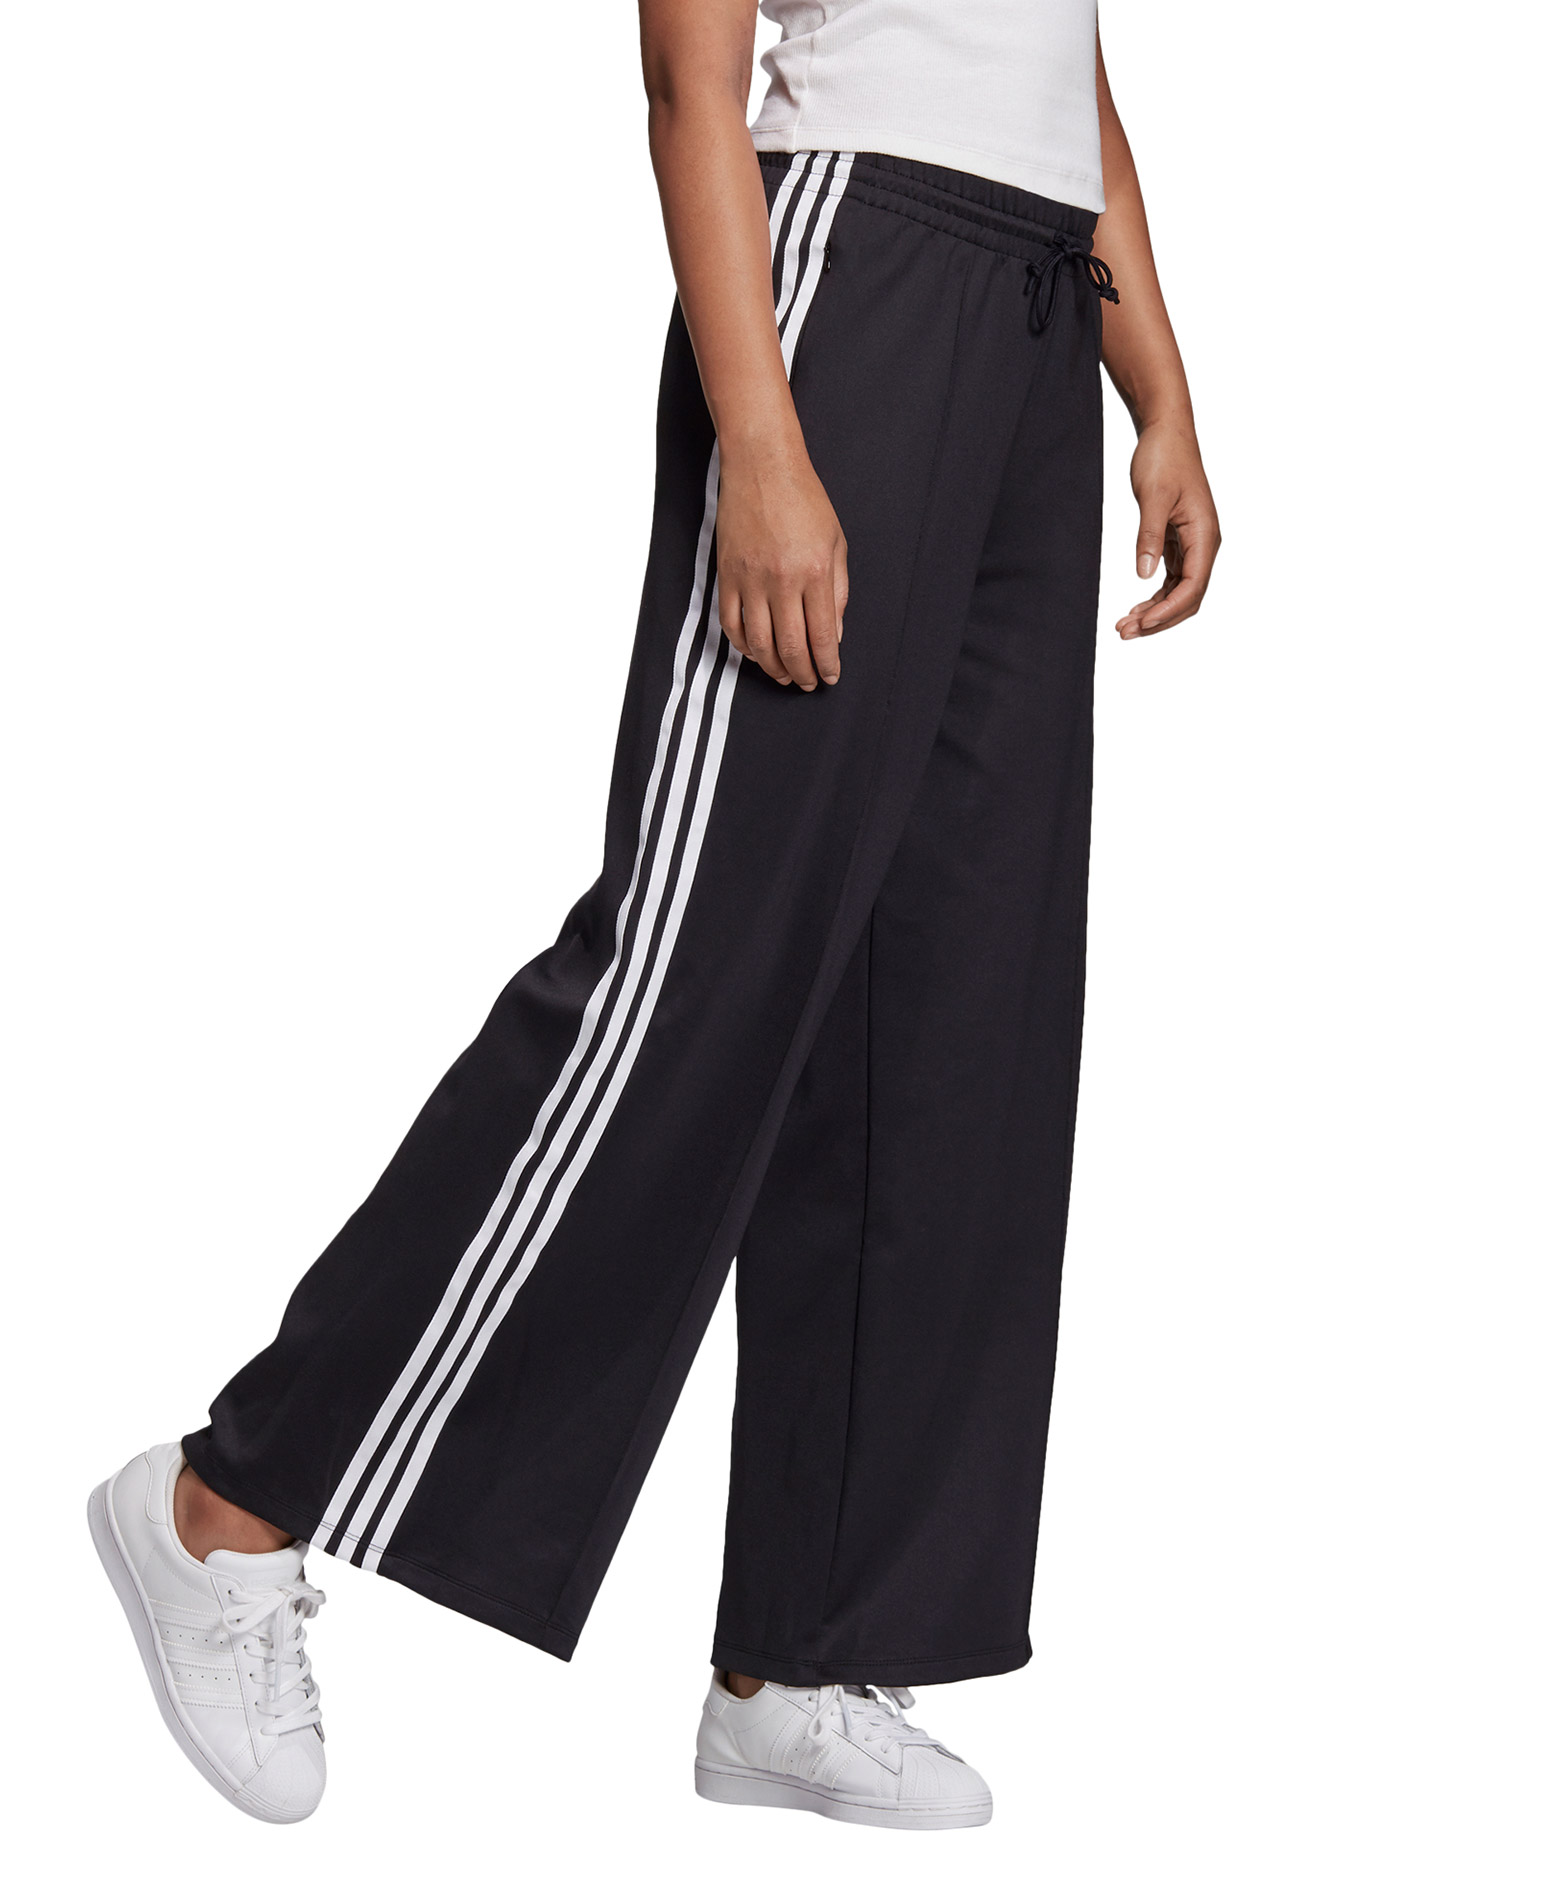 adidas Originals RELAXED PANT PB GD2273 Μαύρο